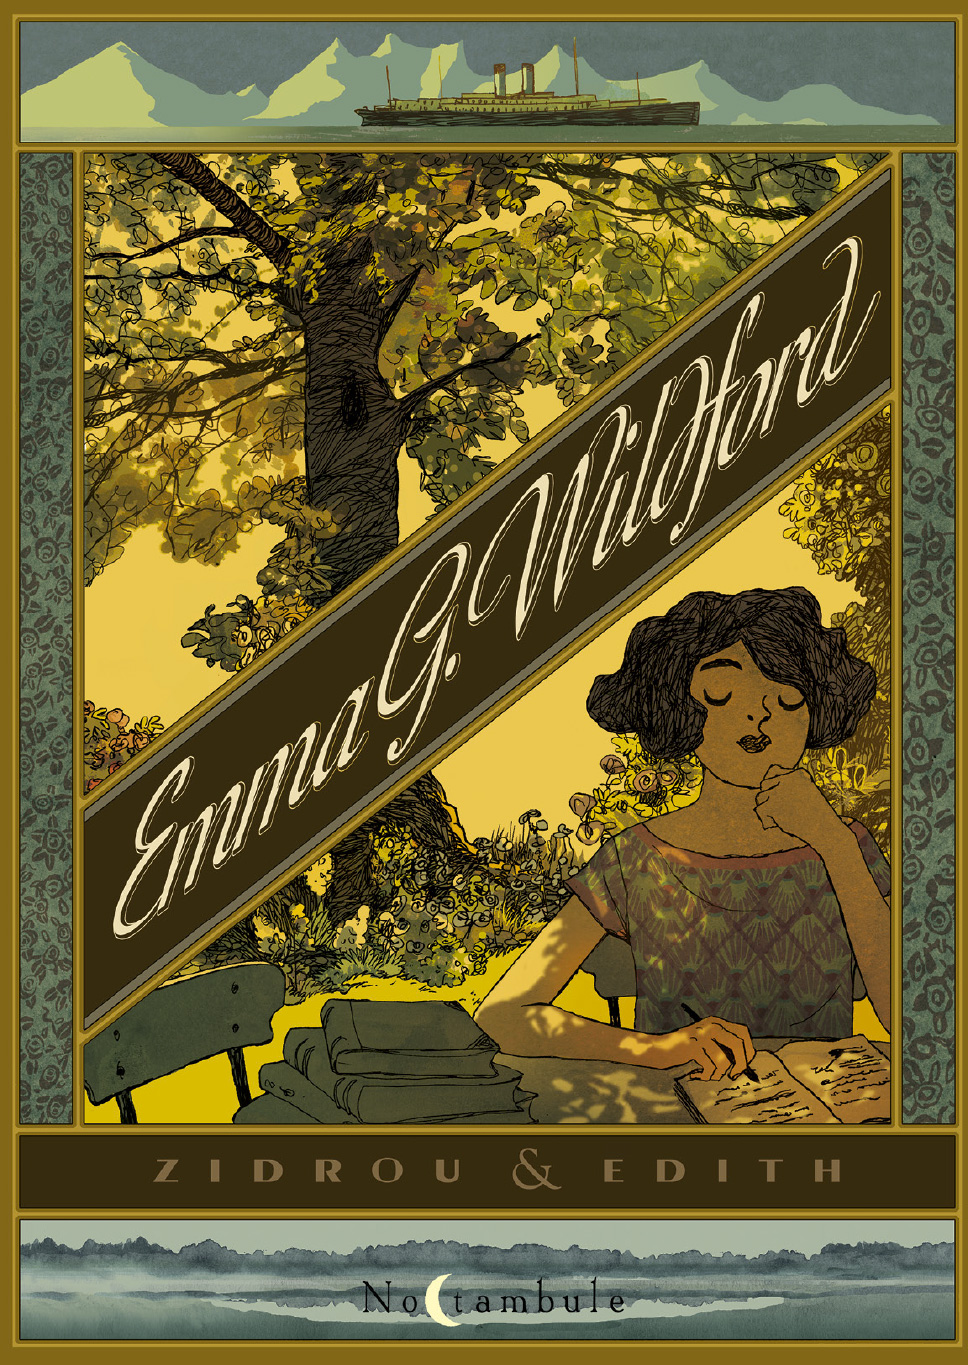 Couverture BD Emma G. Wildford